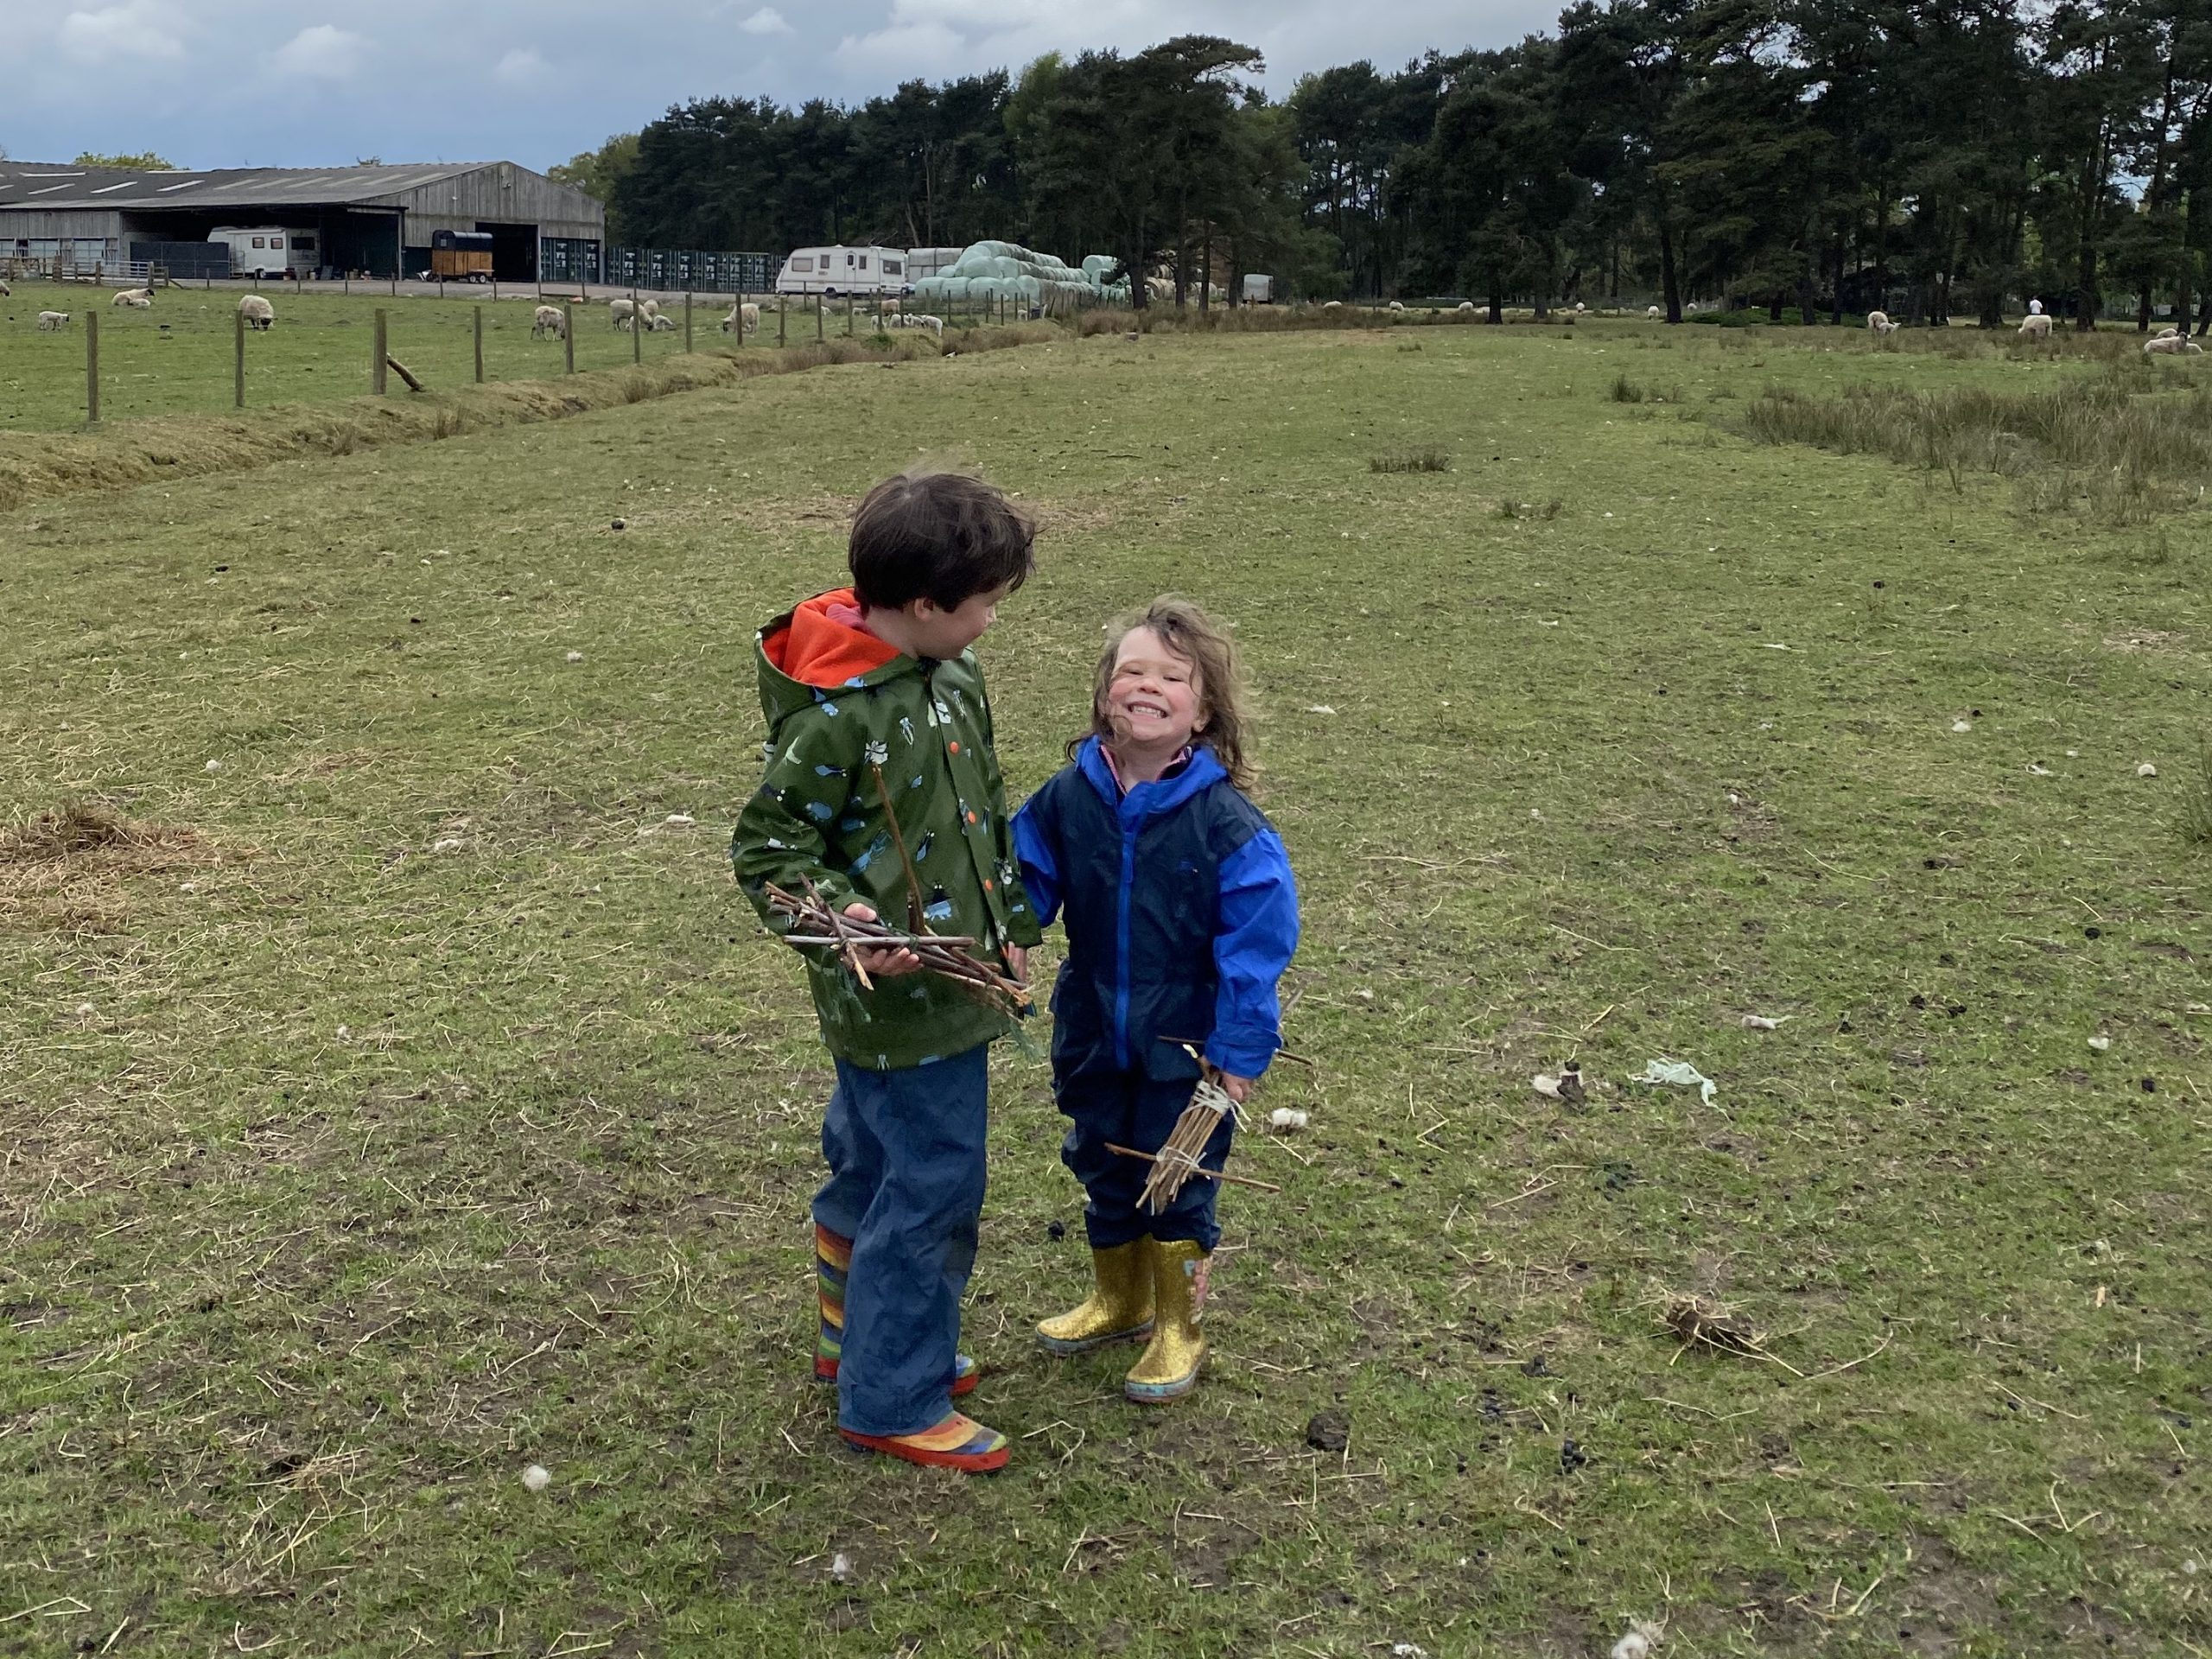 two children in a field grinning at the camera with sticks in their hands